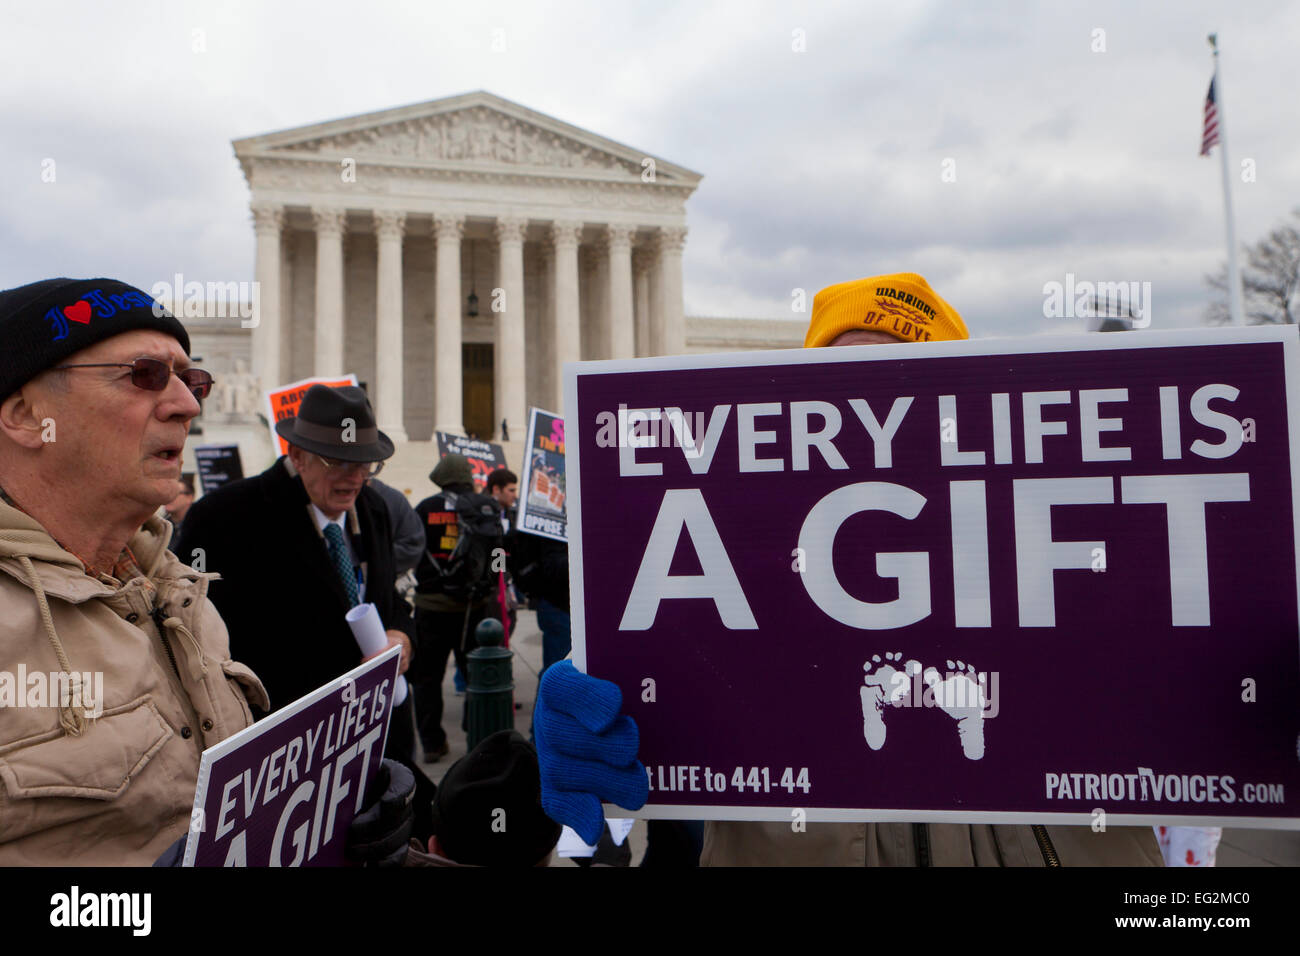 Washington DC, USA. 22nd Jan, 2015. Pro-Life supporters standing in front of the Supreme Court building - Stock Image